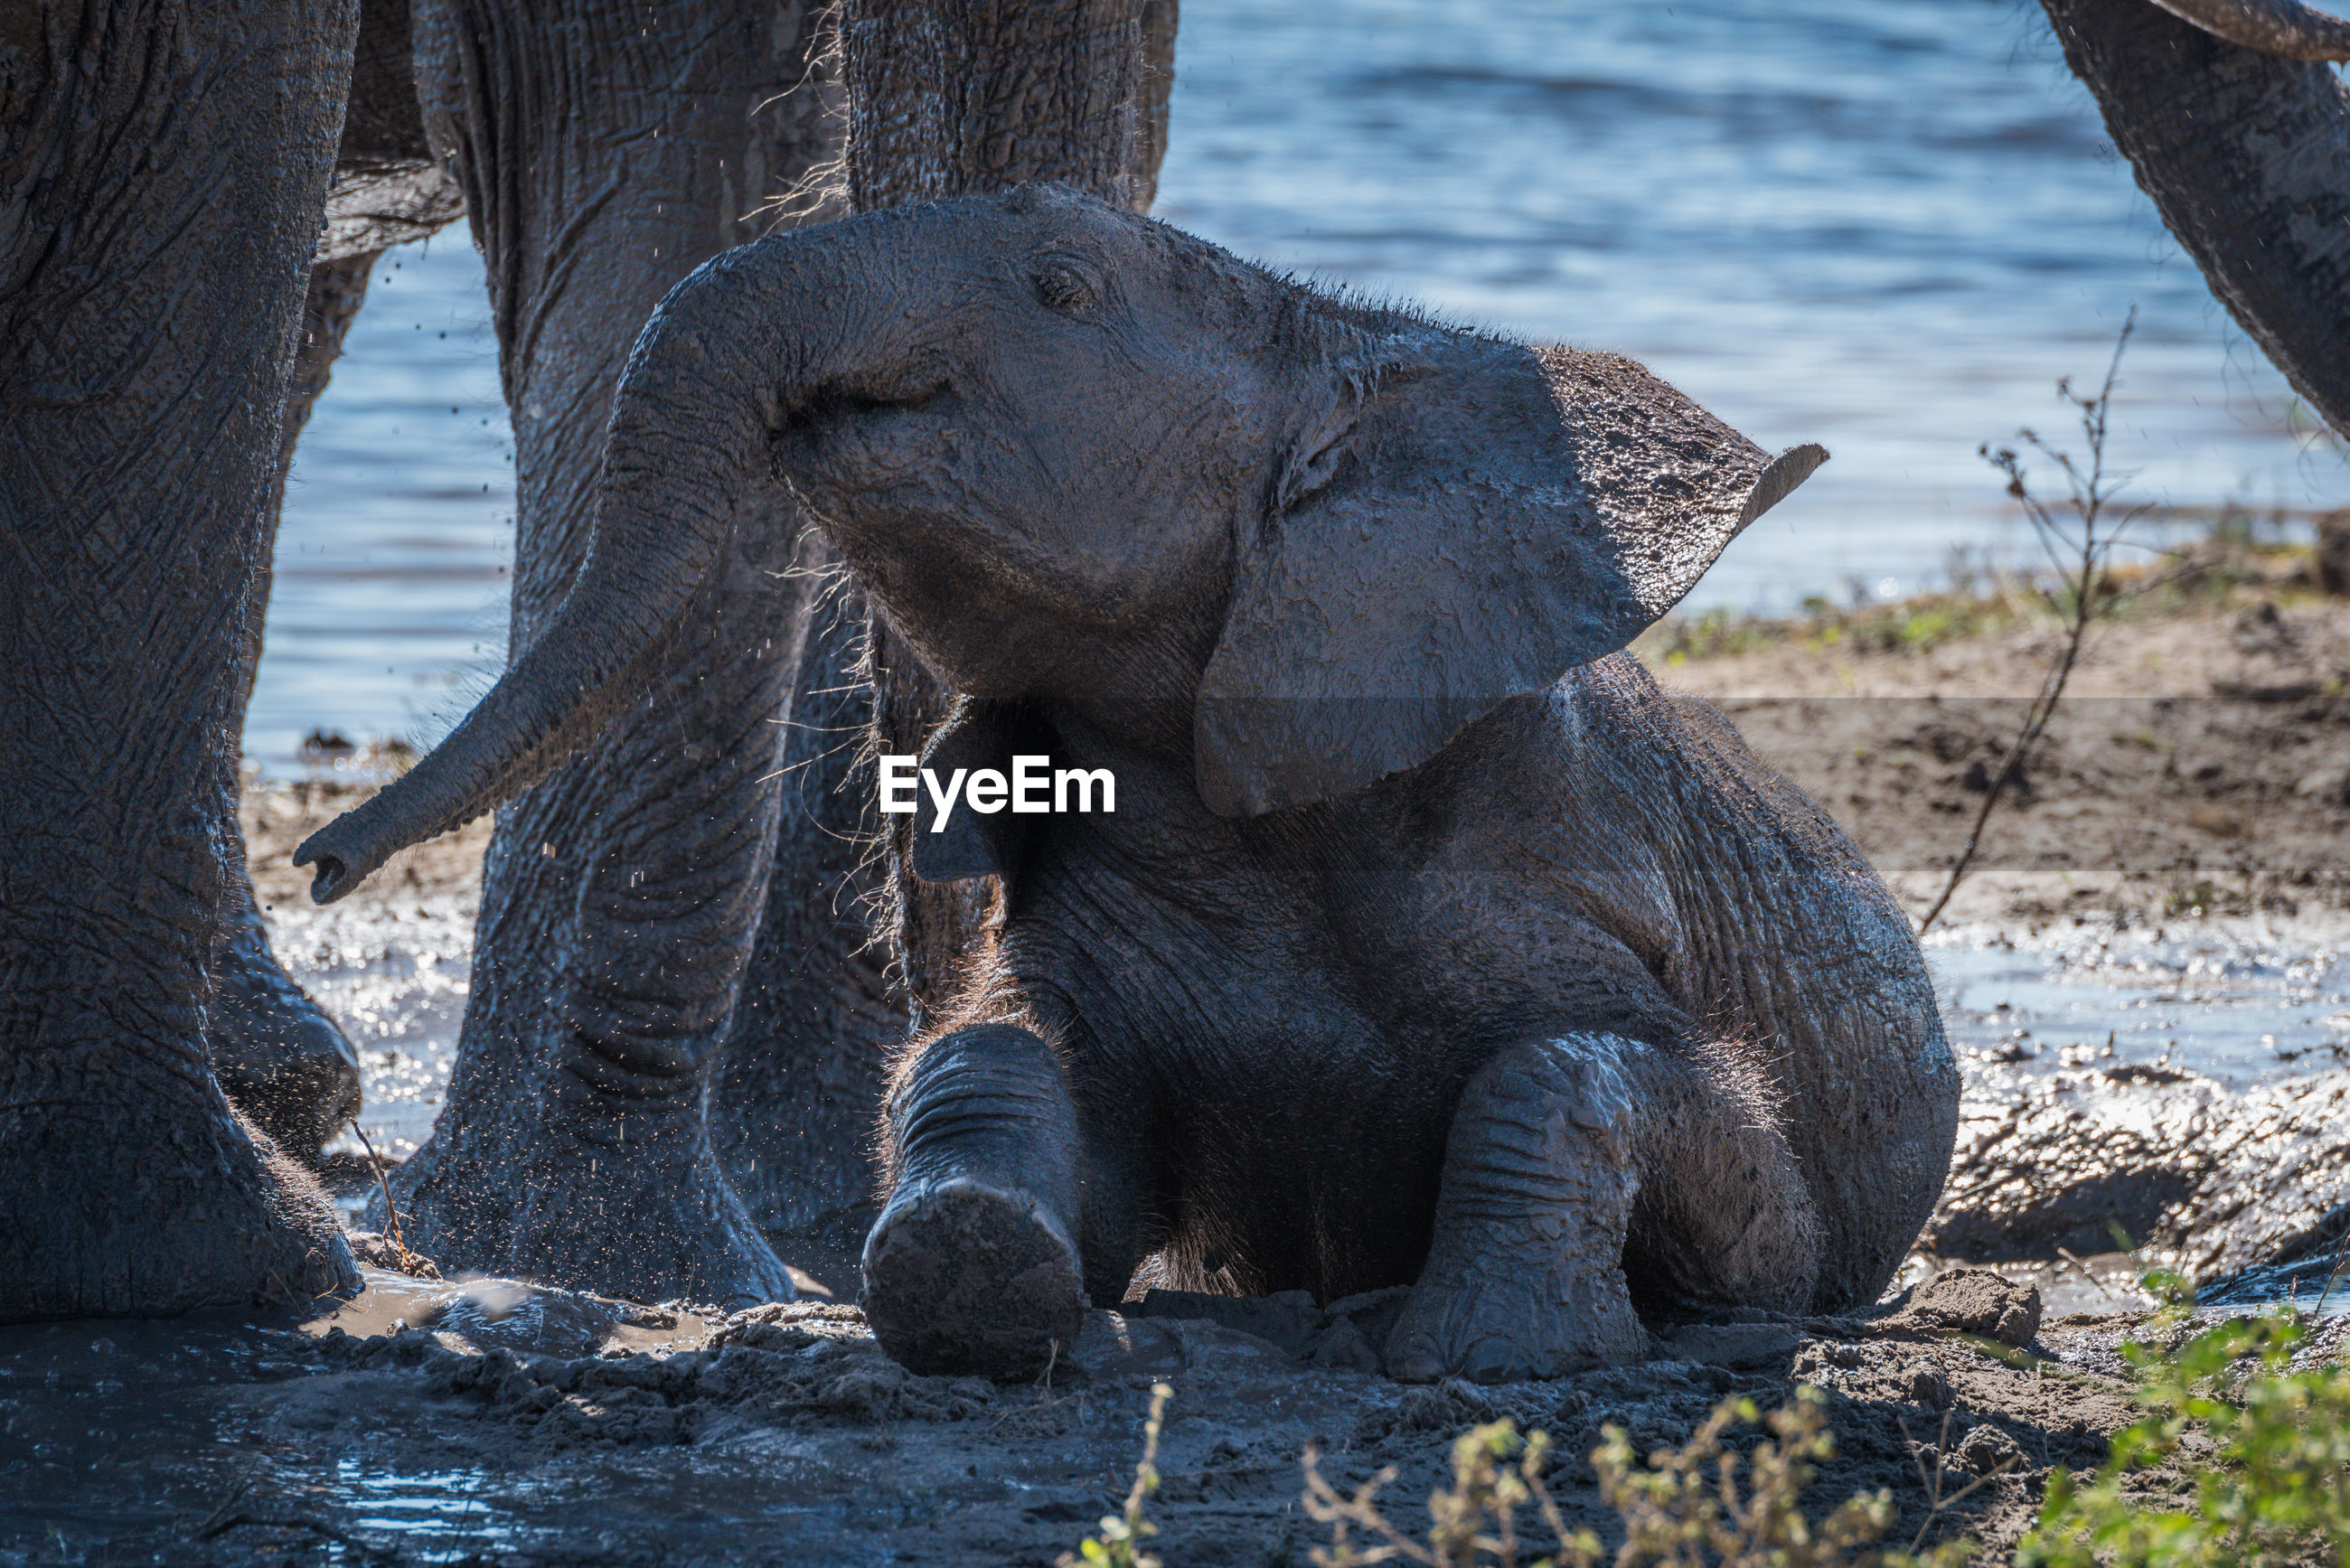 Close-up of elephant calf relaxing in mud